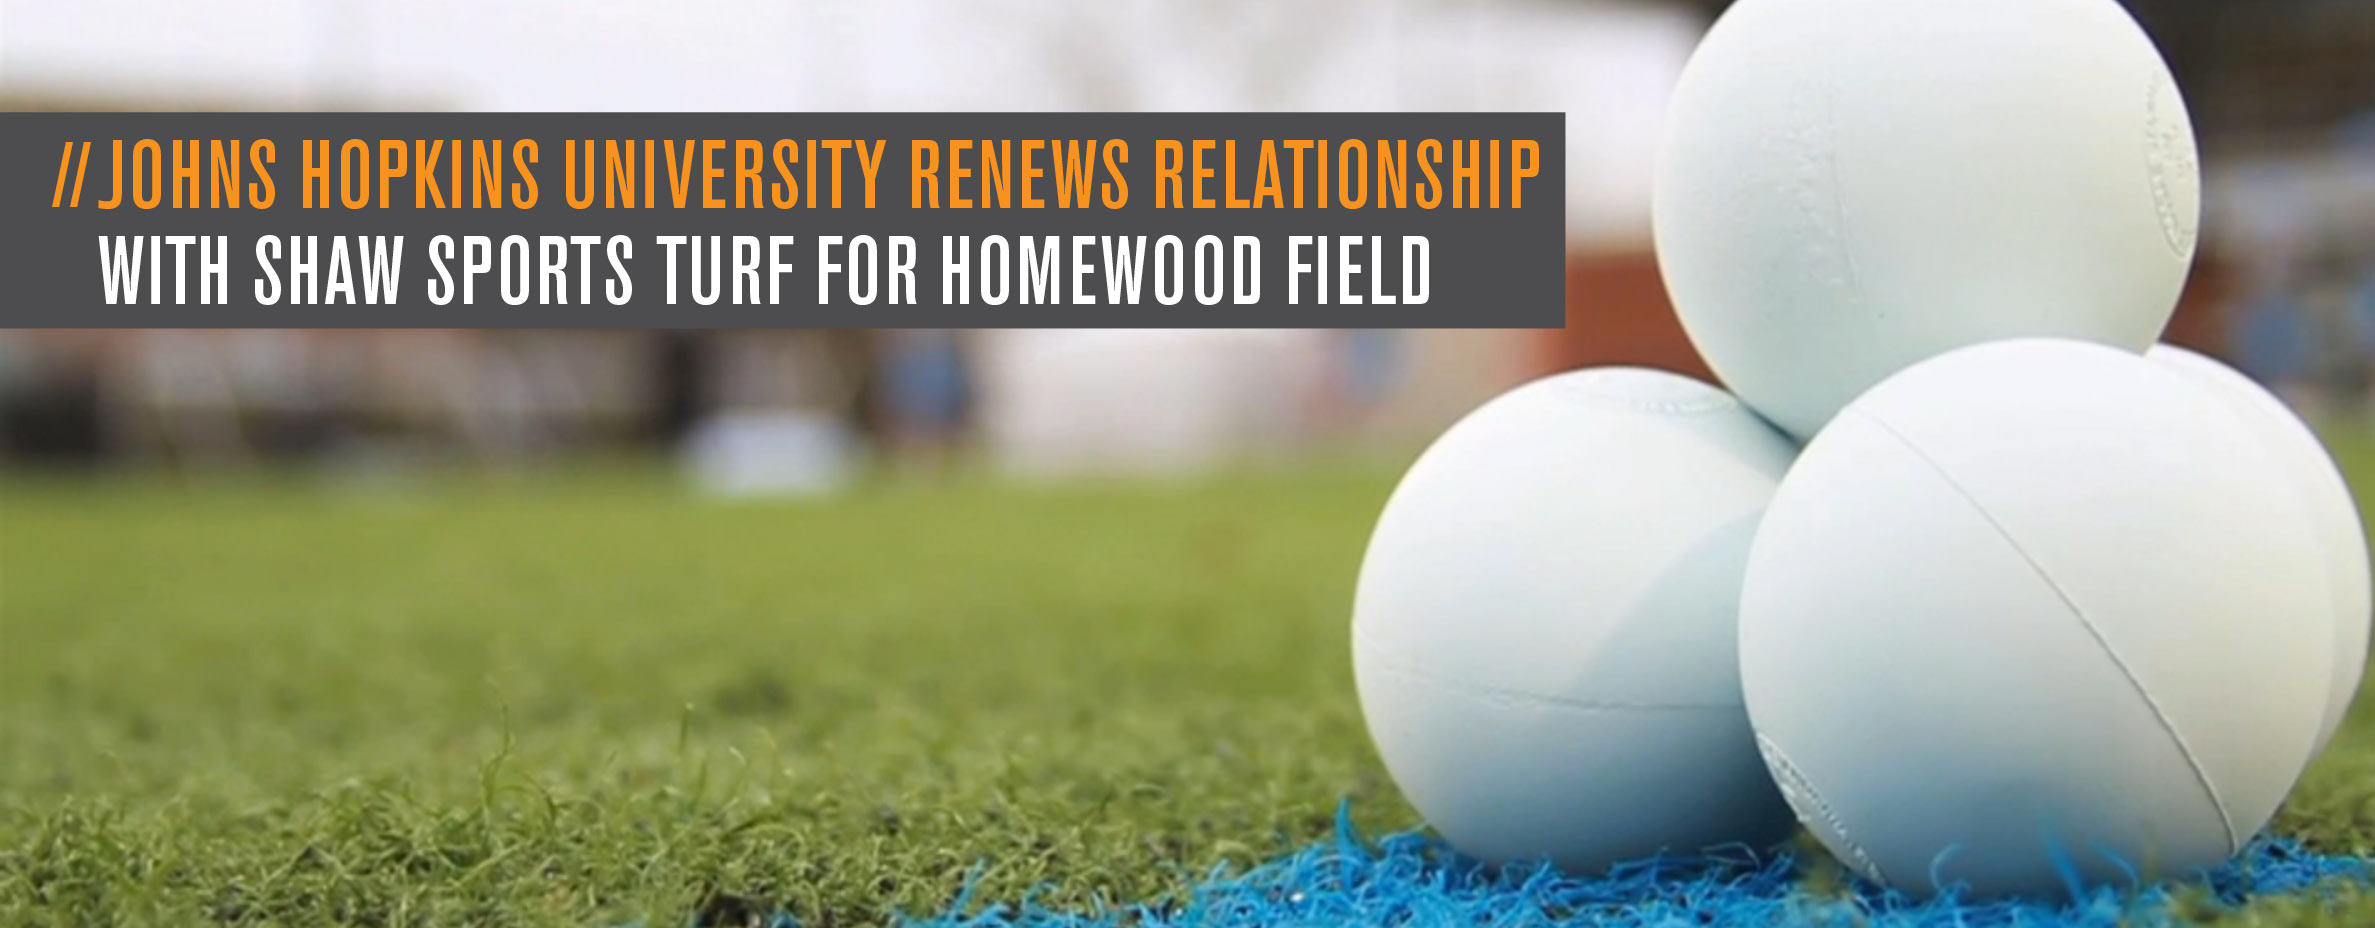 JOHNS HOPKINS UNIVERSITY RENEWS RELATIONSHIP WITH SHAW SPORTS TURF FOR HOMEWOOD FIELD Image